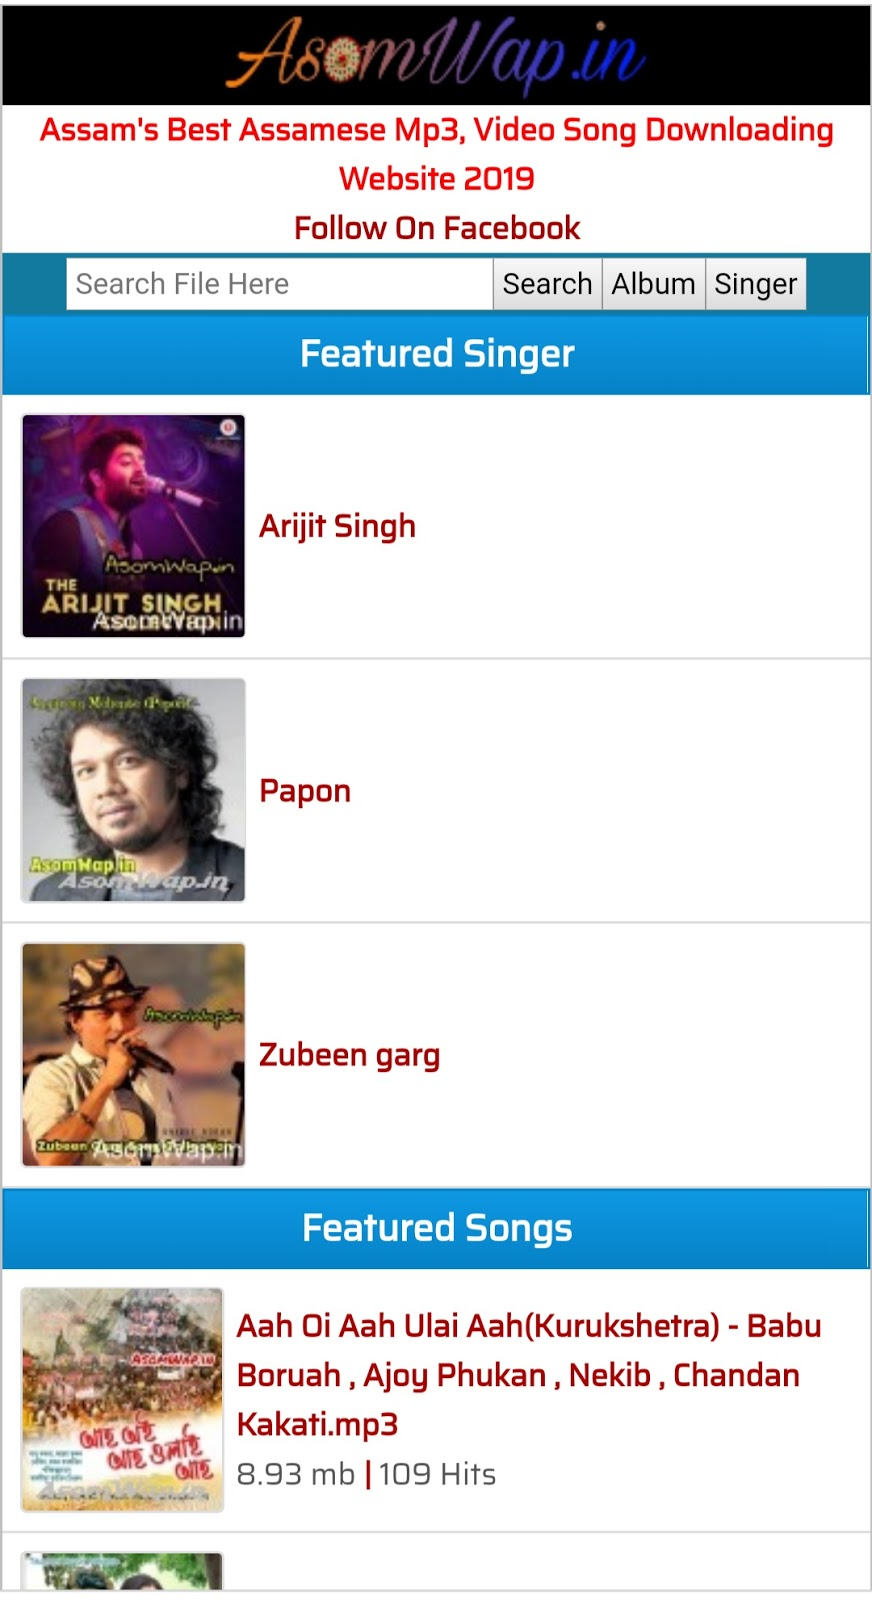 Assamese film rowd mp3 songs free download.